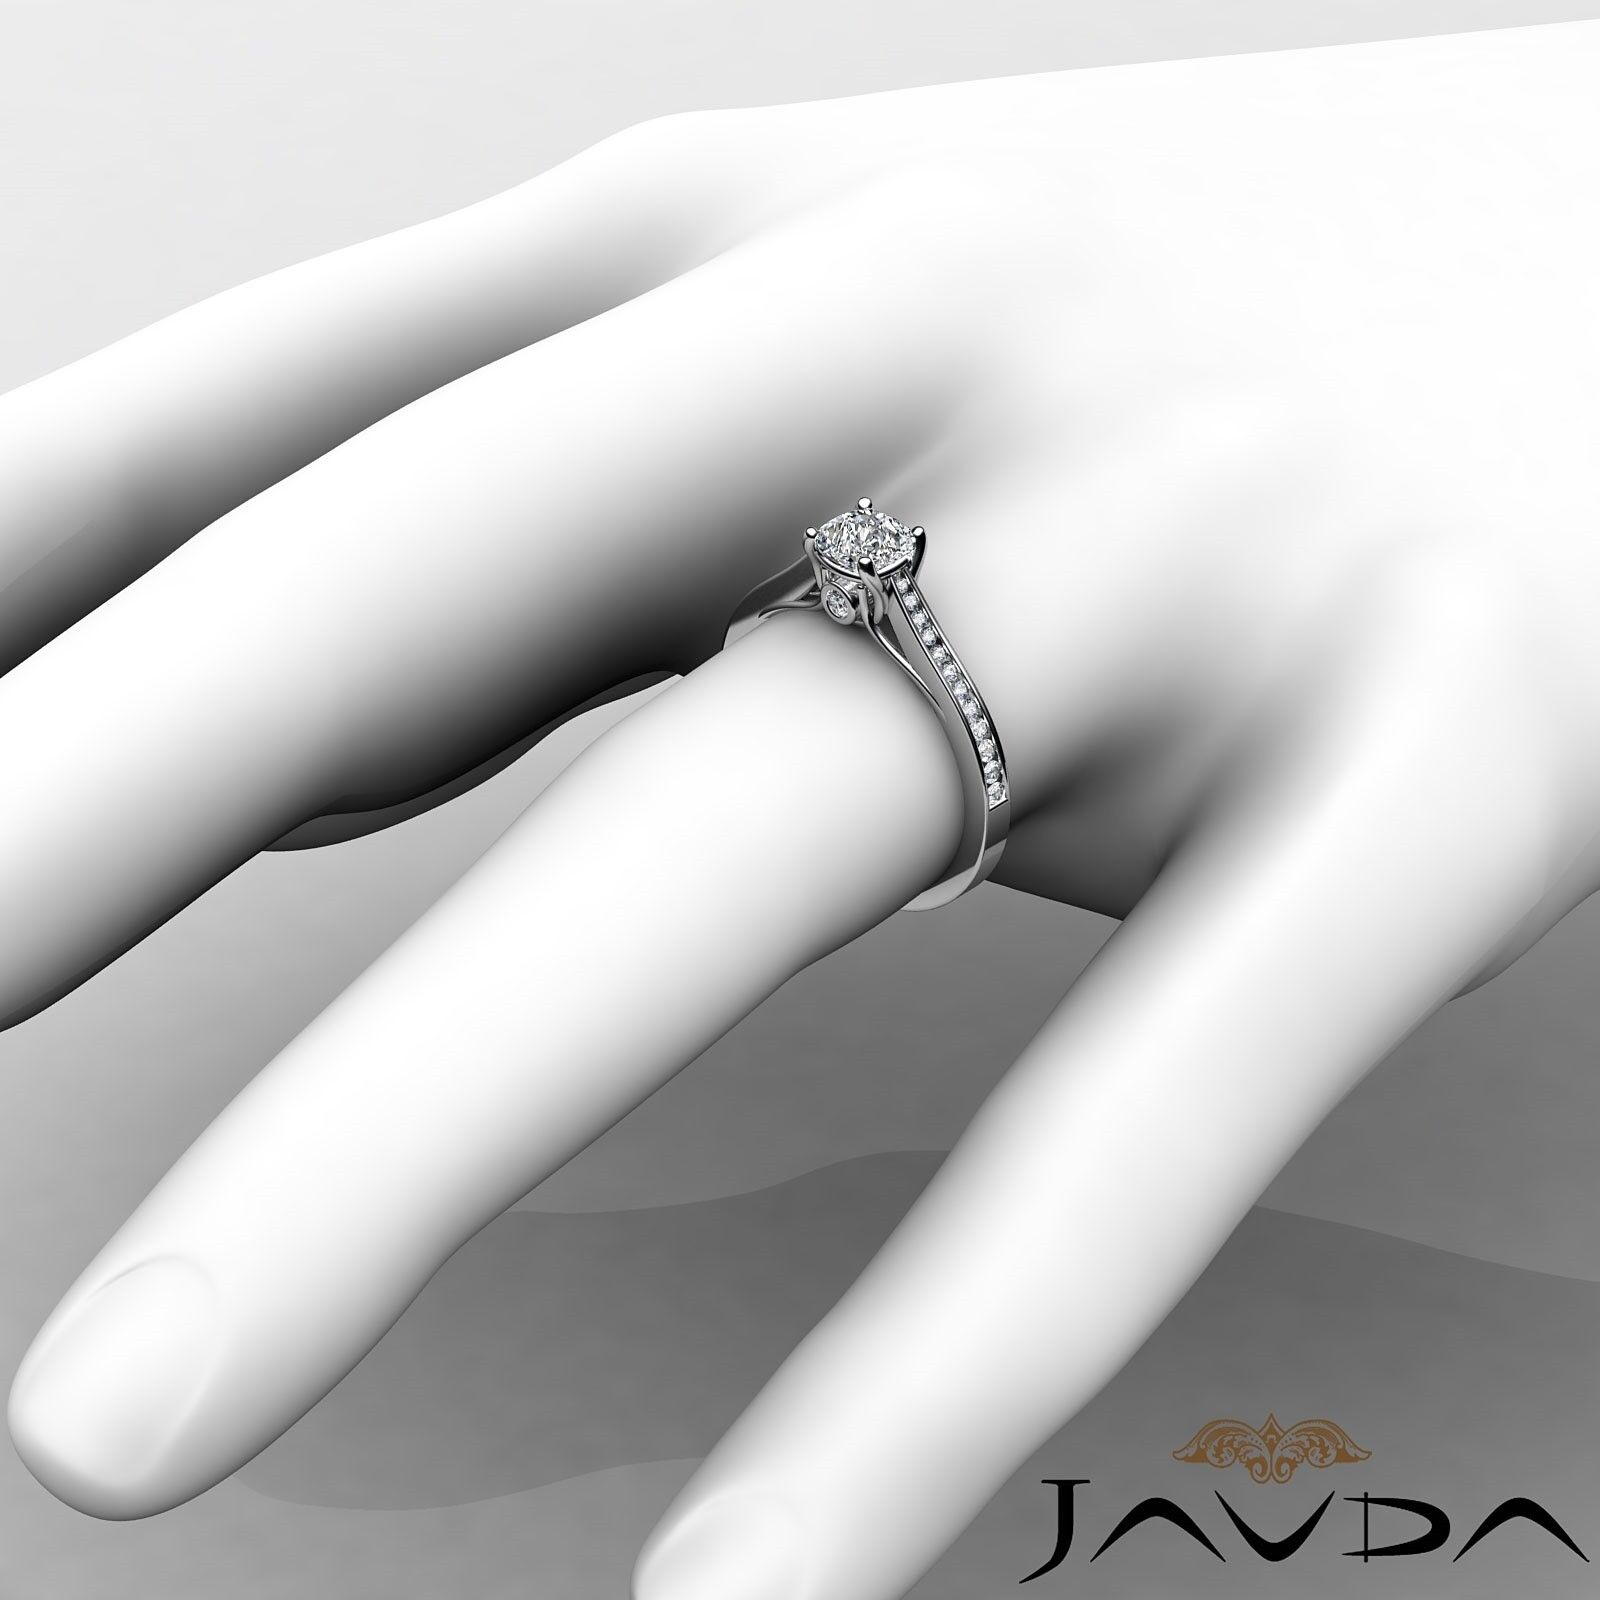 1.2ctw Channel Bezel Prong Set Cushion Diamond Engagement Ring GIA M-SI2 W Gold 2